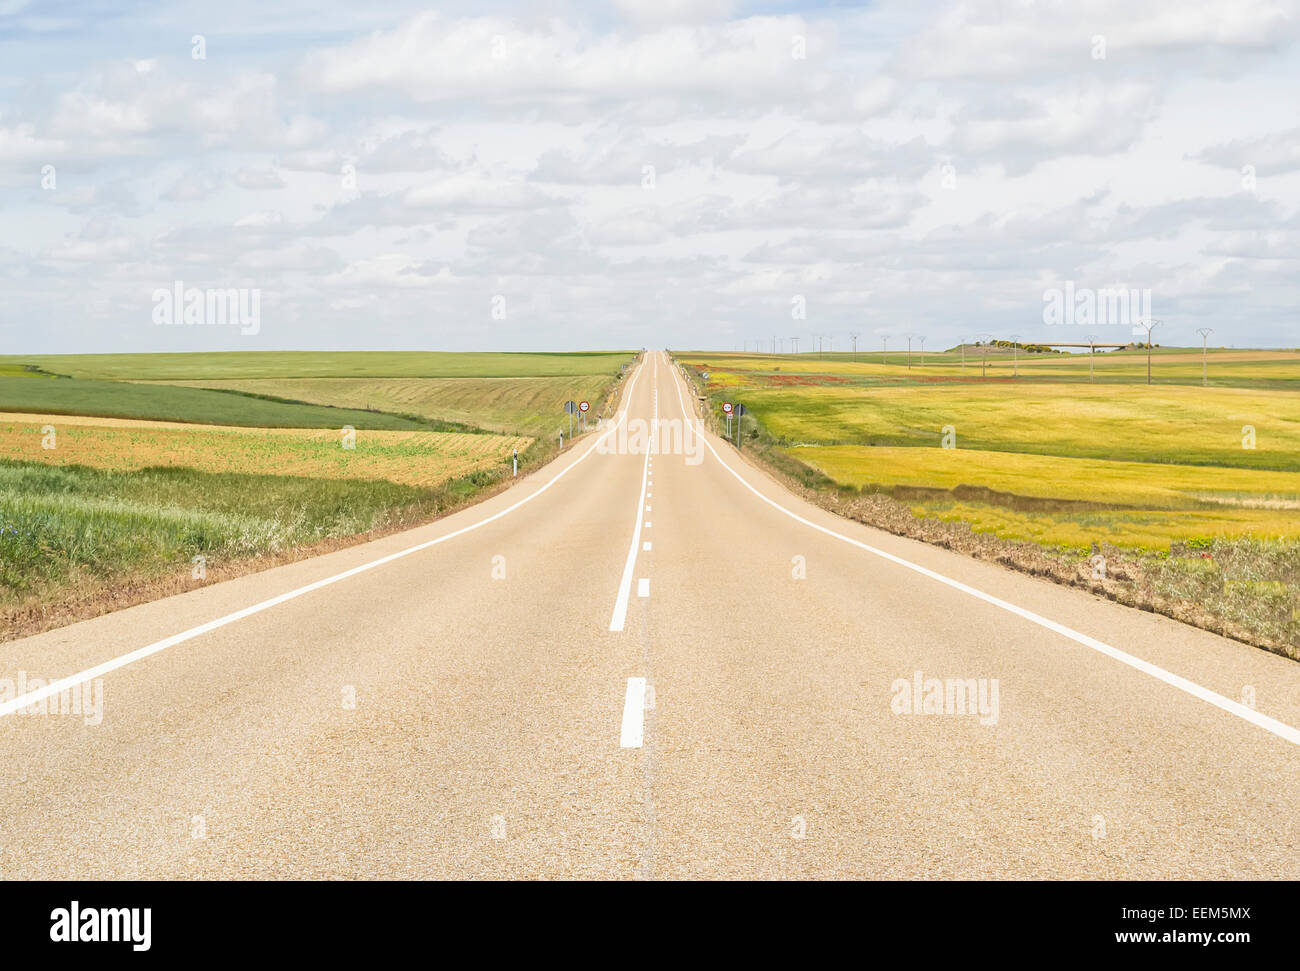 Open road through a plain that never seems to end Stock Photo